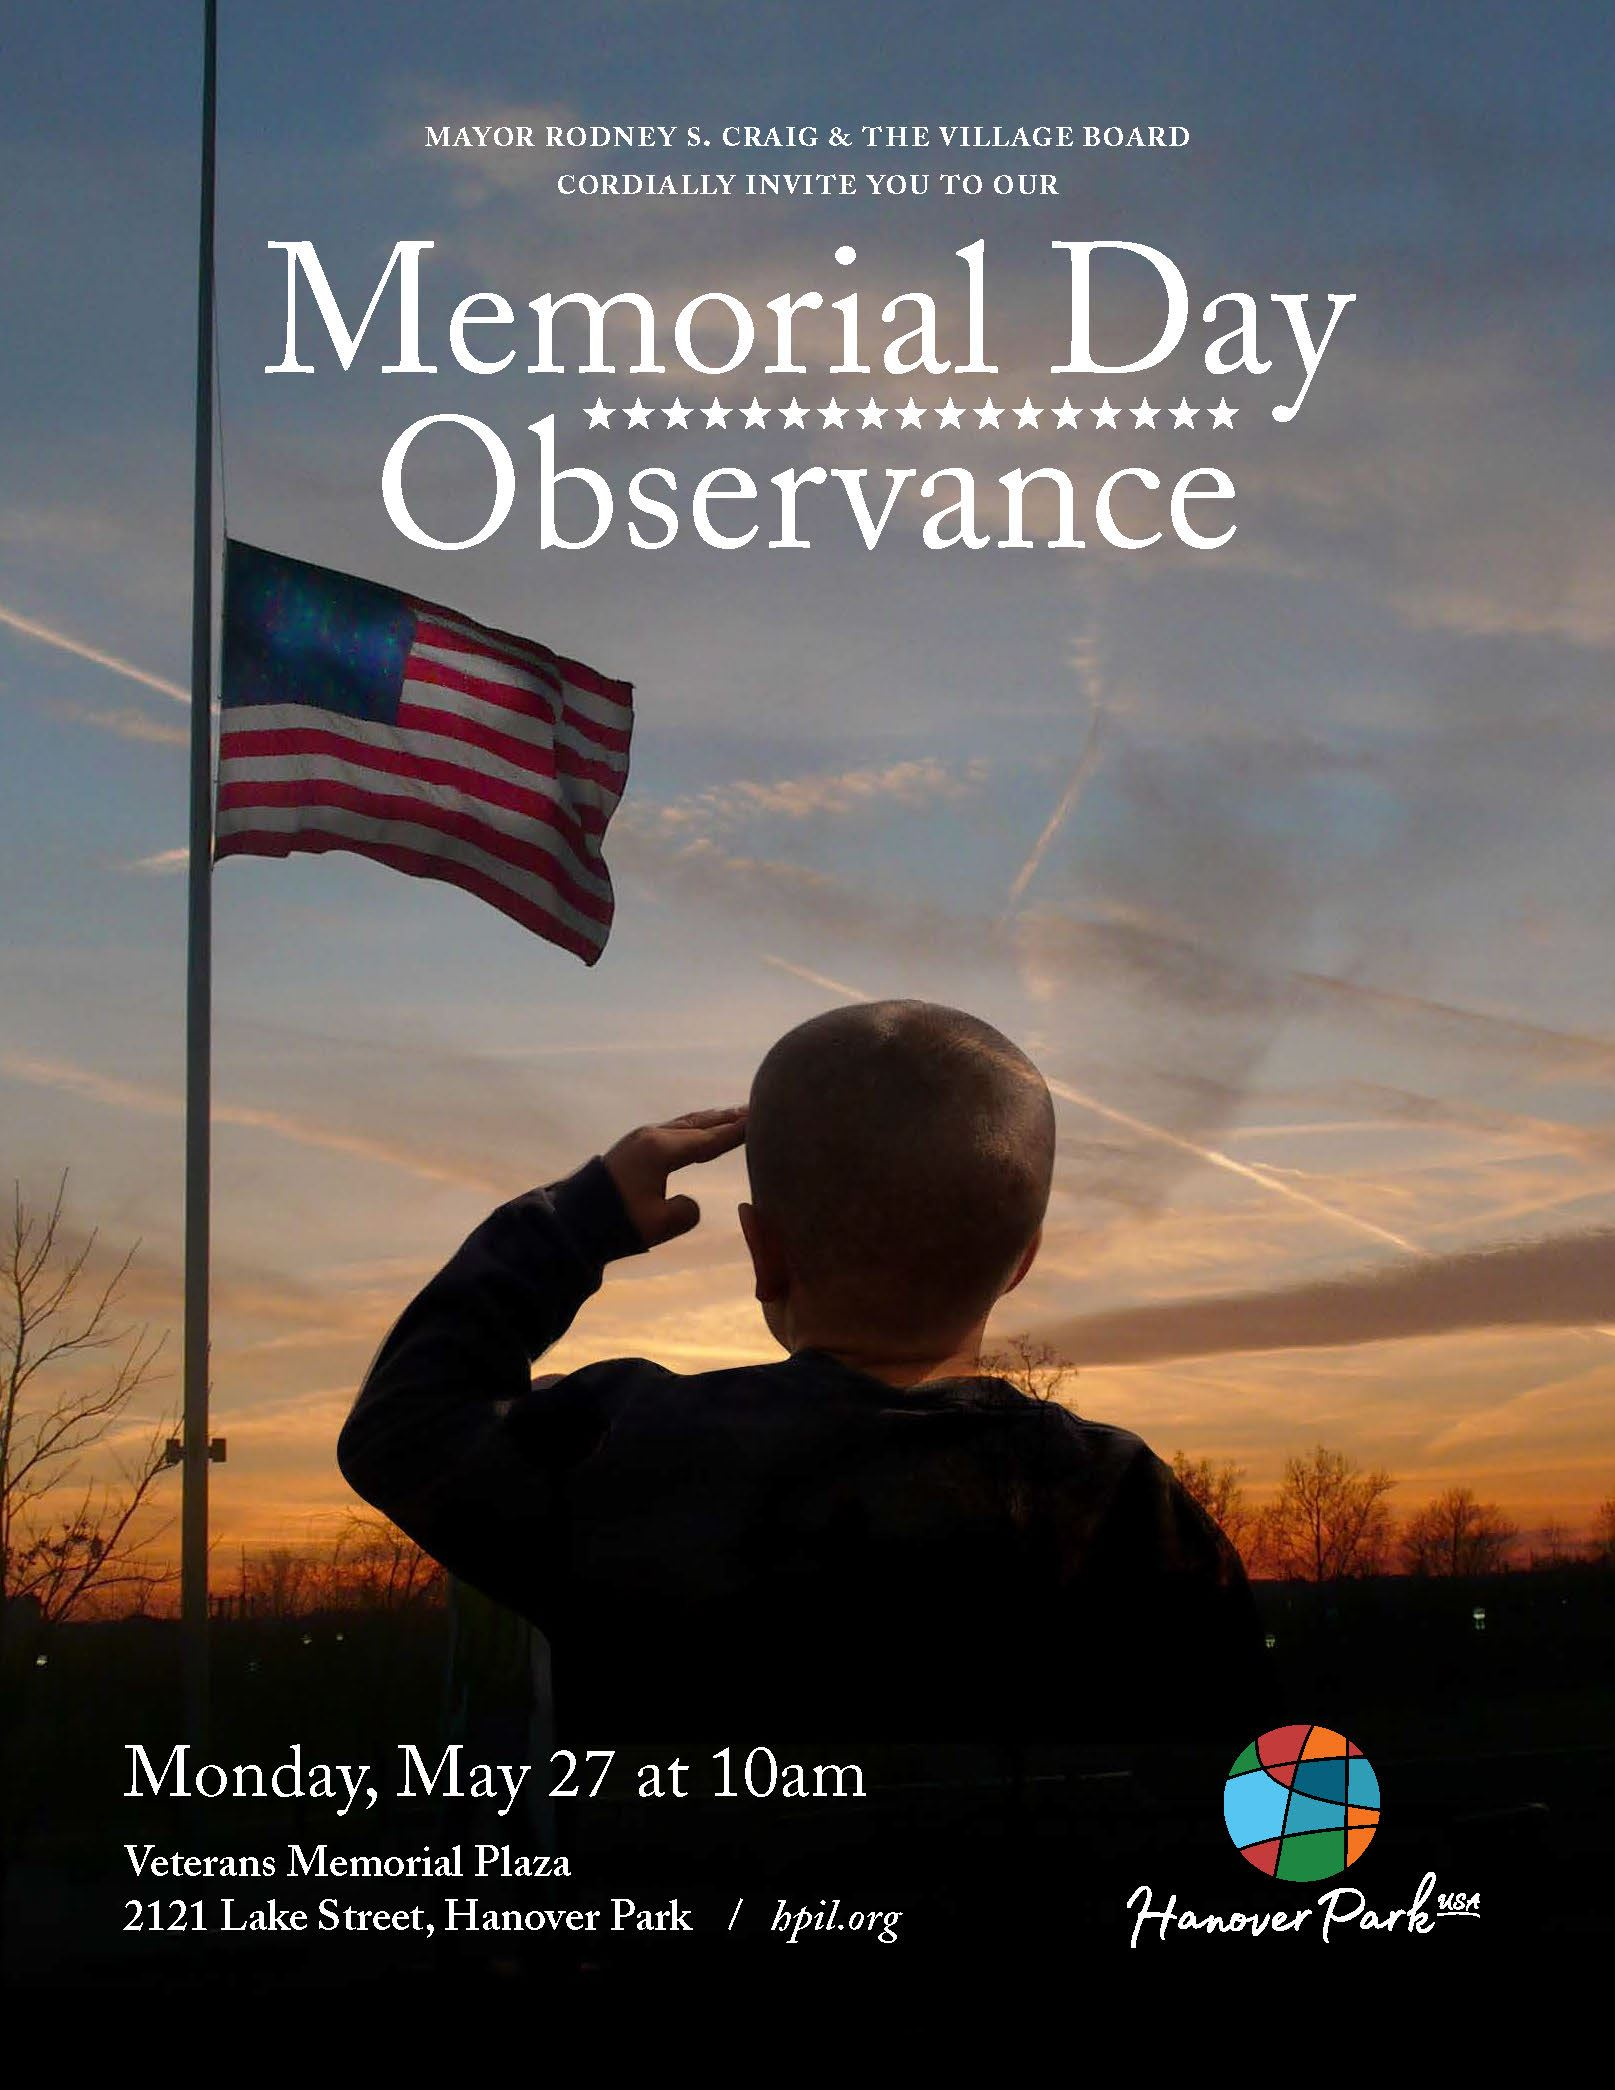 Memorial Day Observance Ceremony Flyer